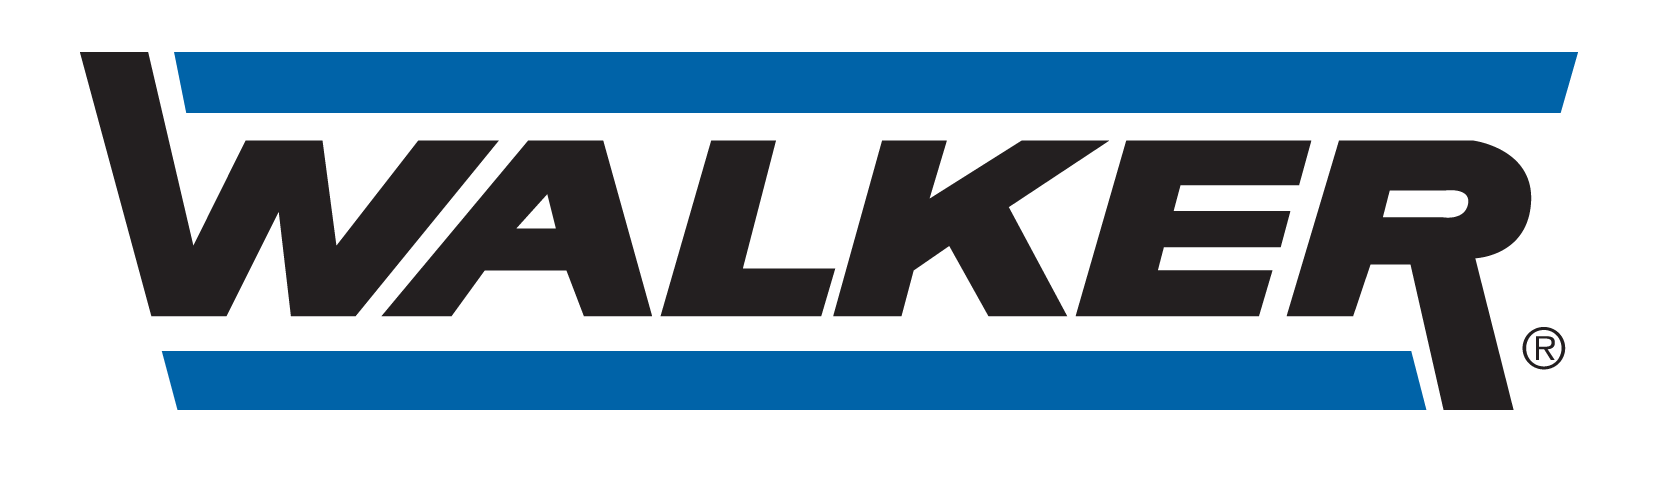 GARAGE JOUAULT - logo Walker